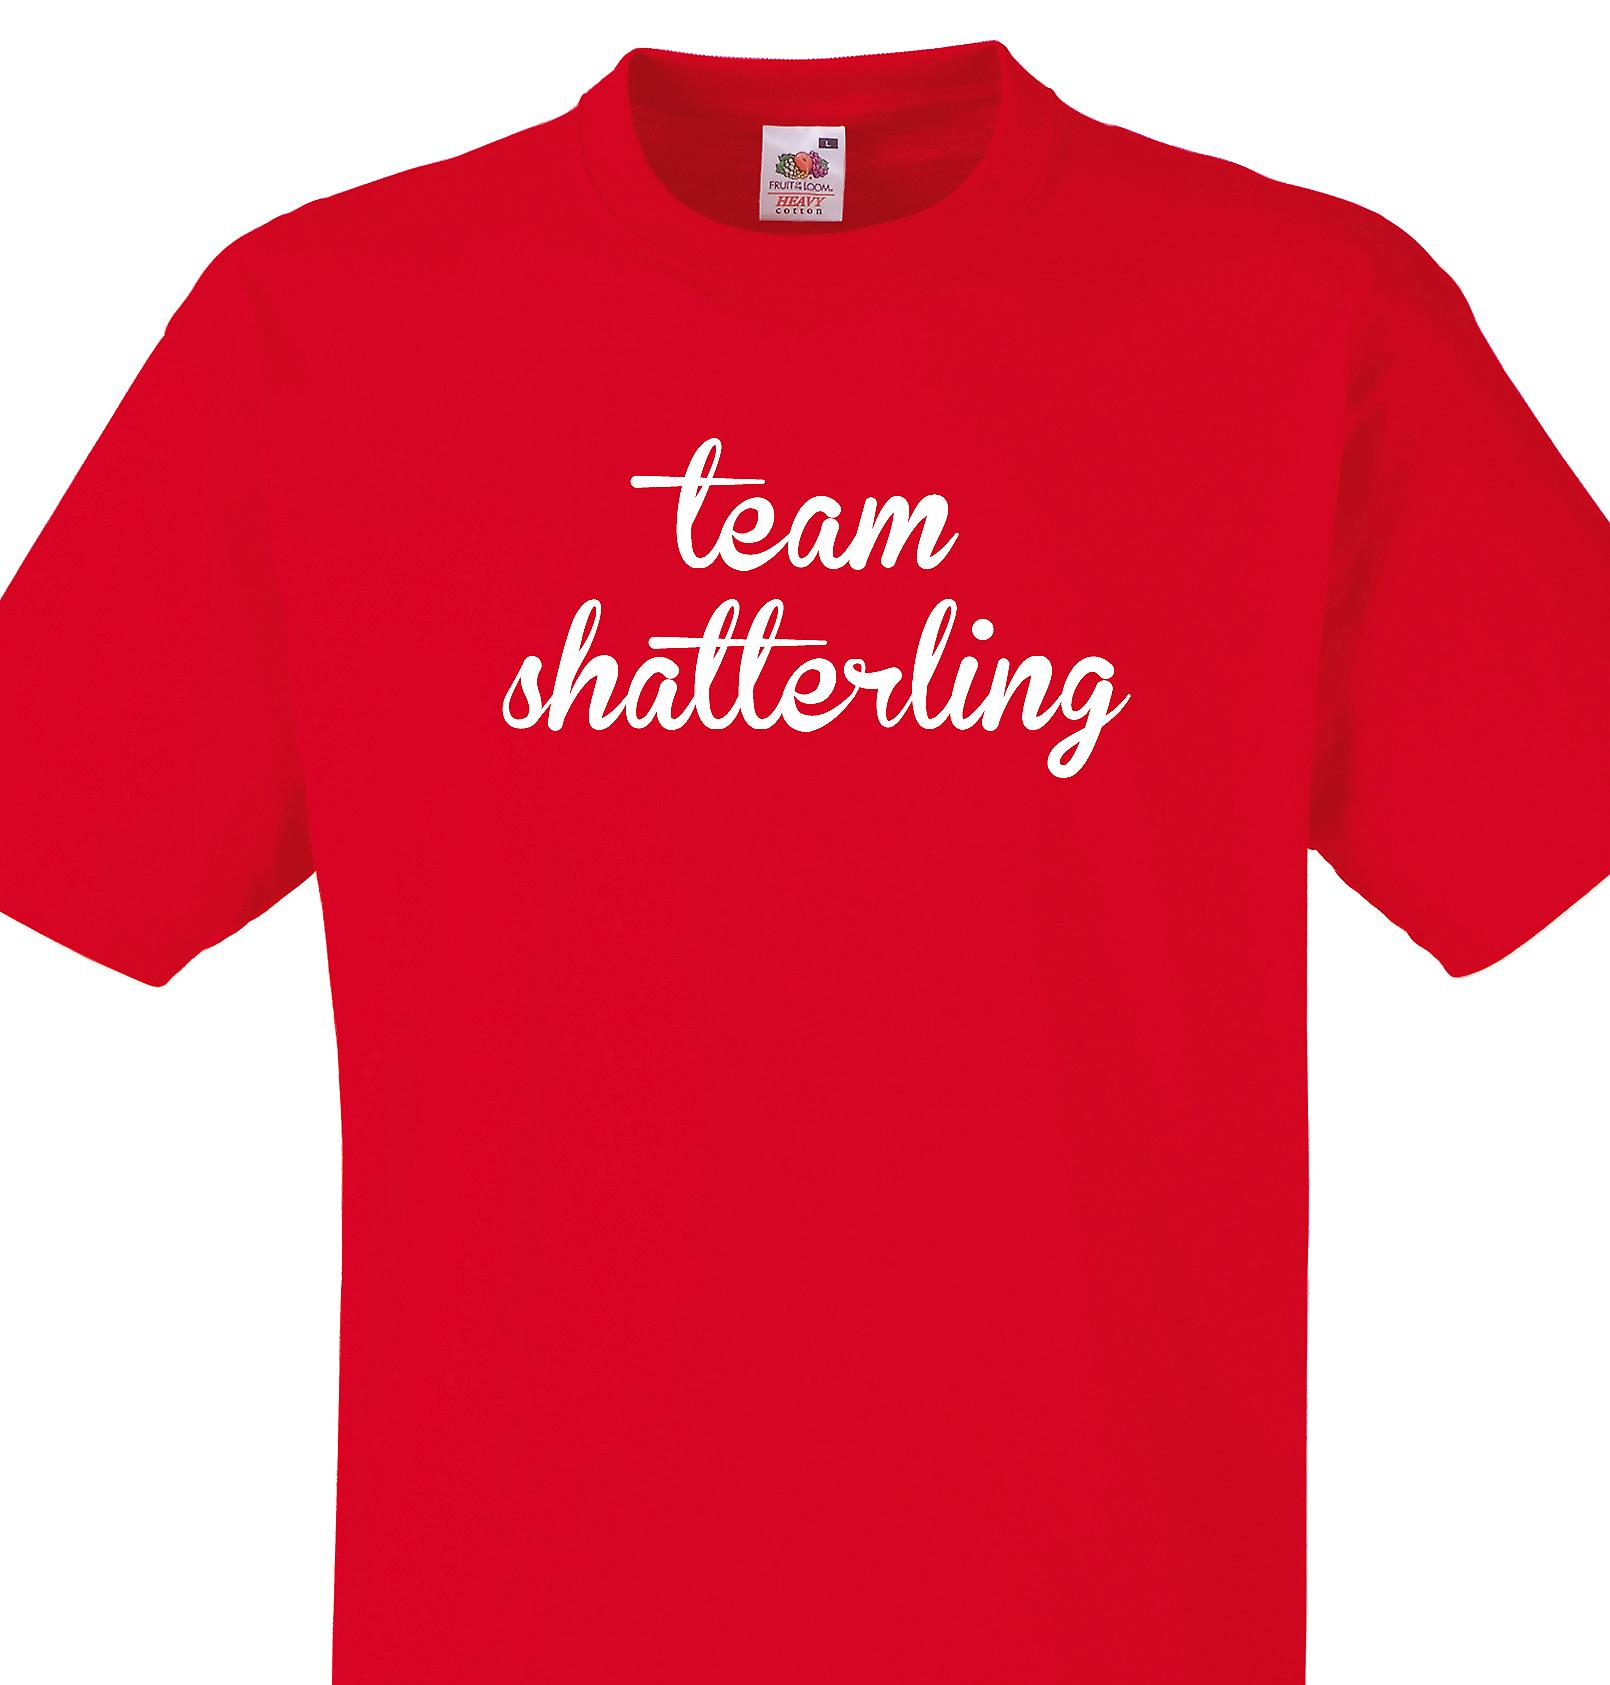 Team Shatterling Red T shirt